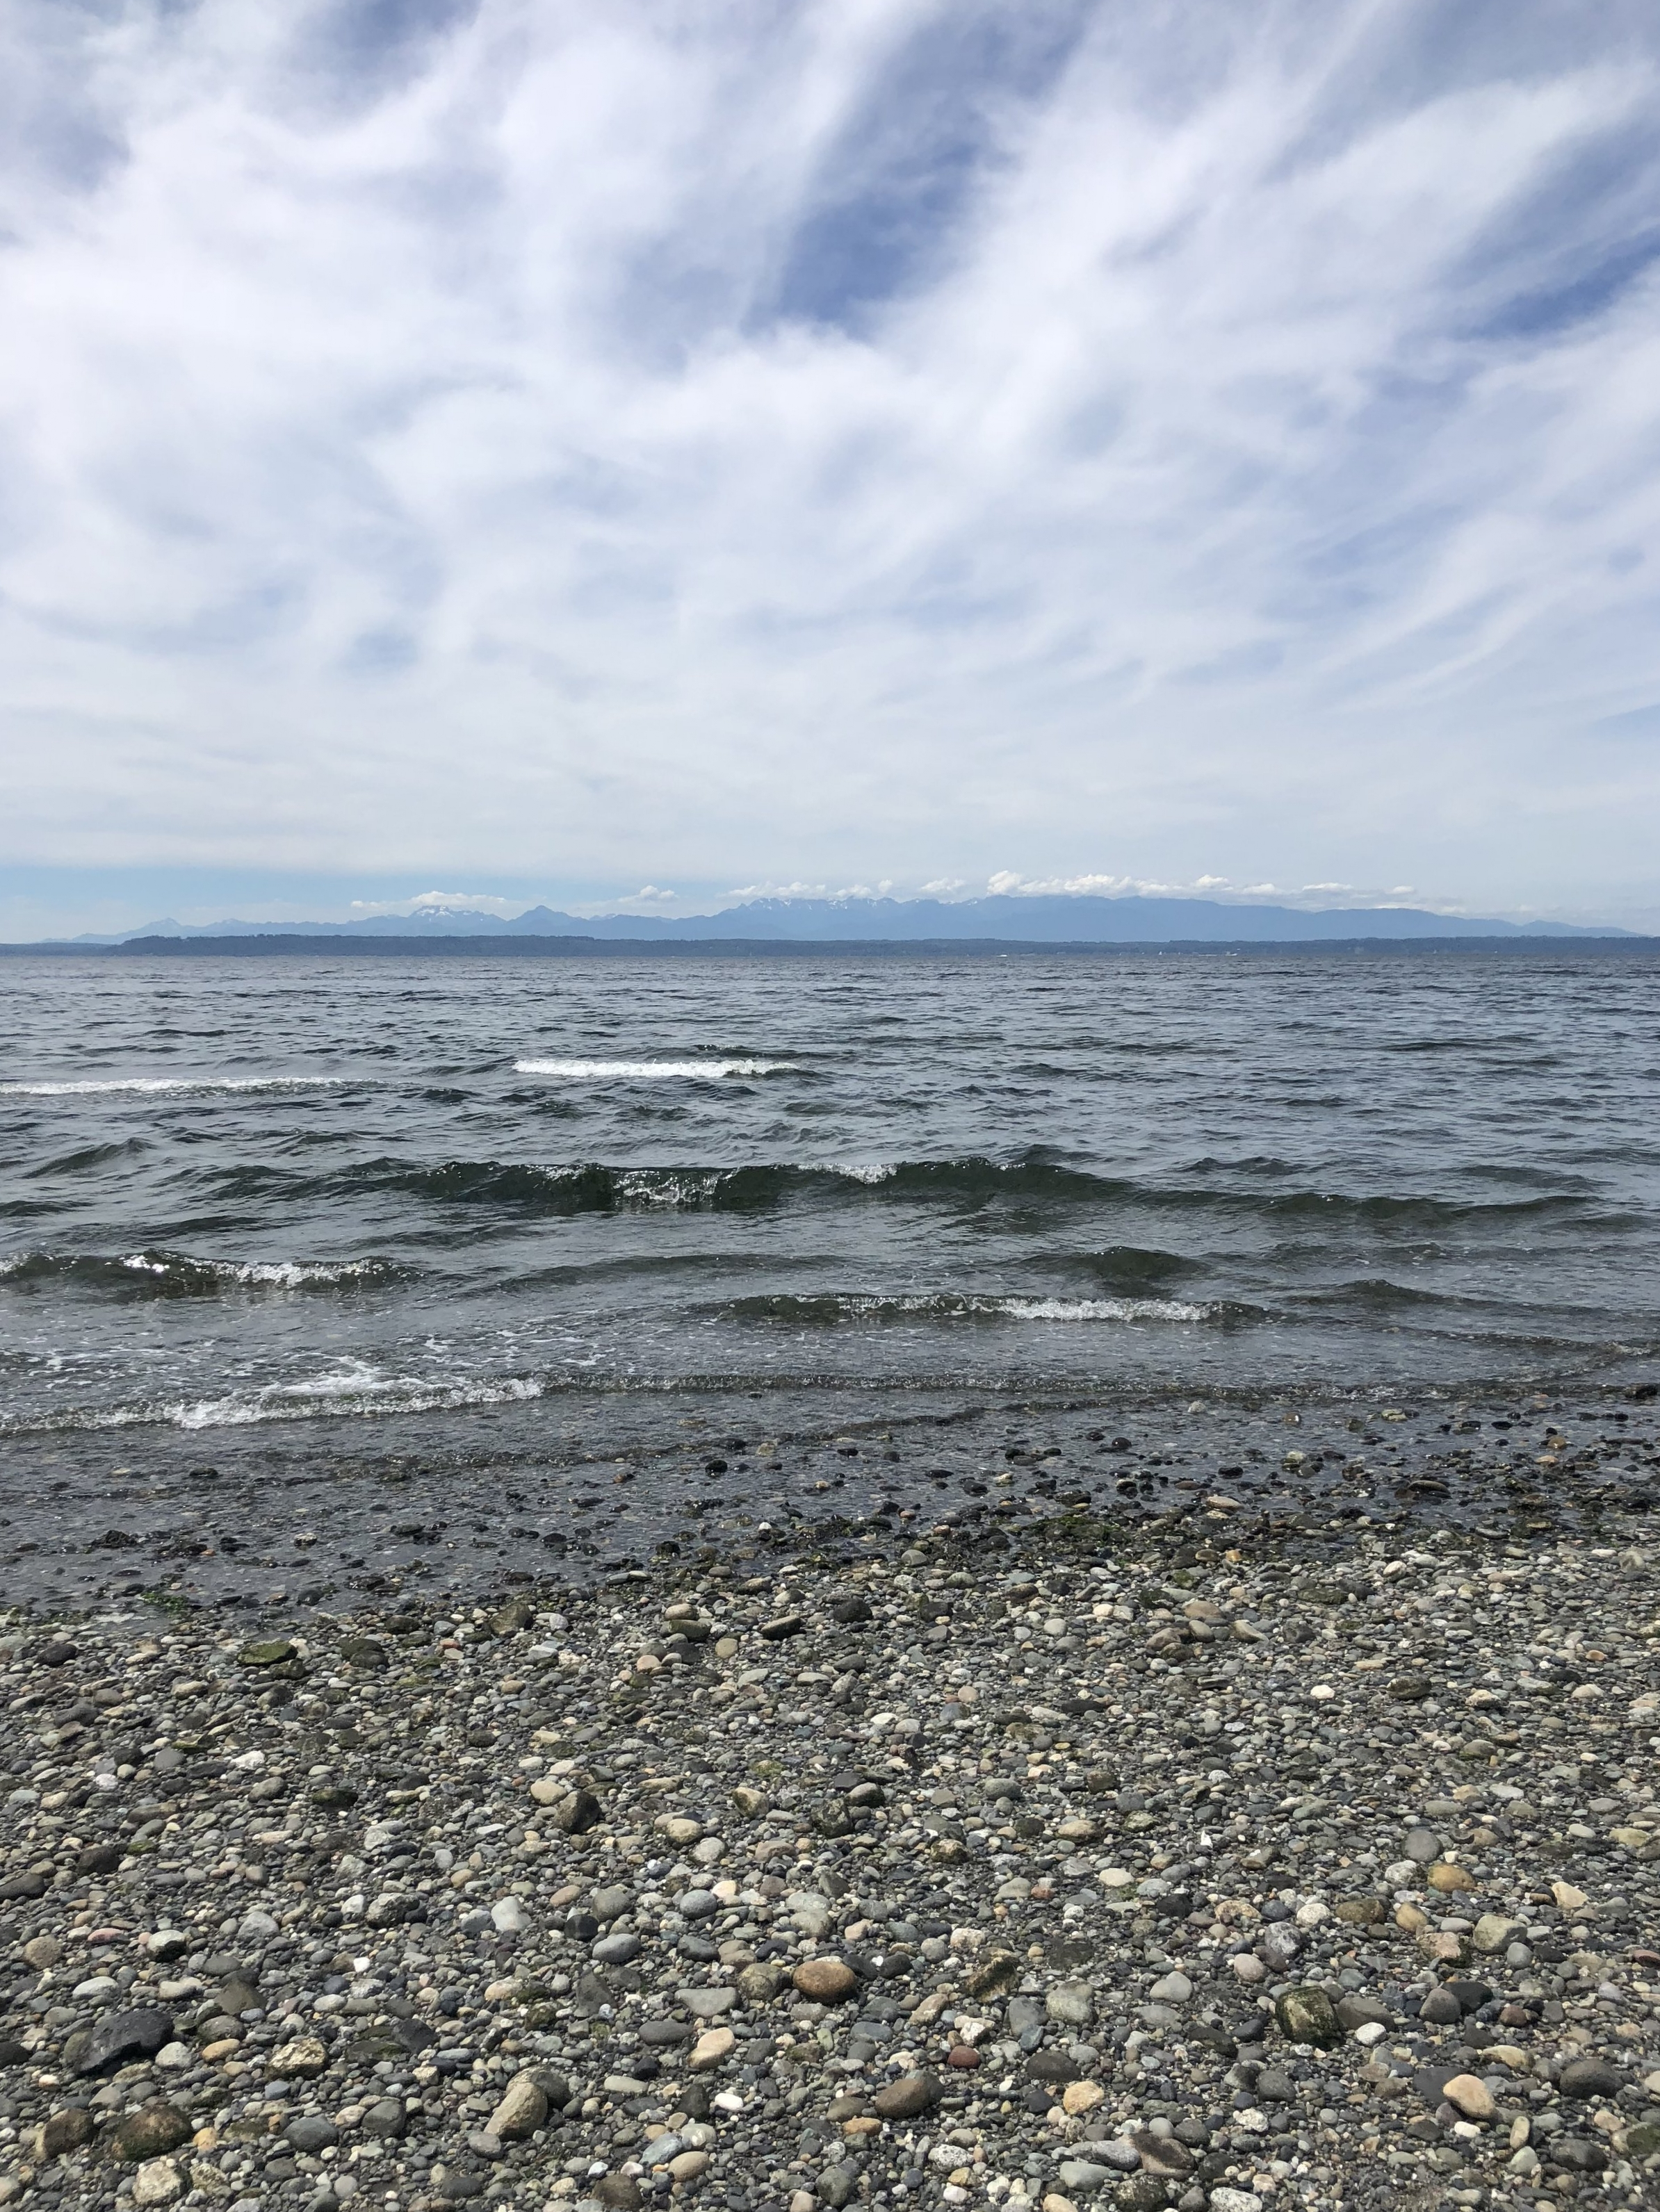 Enjoying the sounds of the ocean and taking in the views of the Olympic Mountains from the beach at the end of the hike.